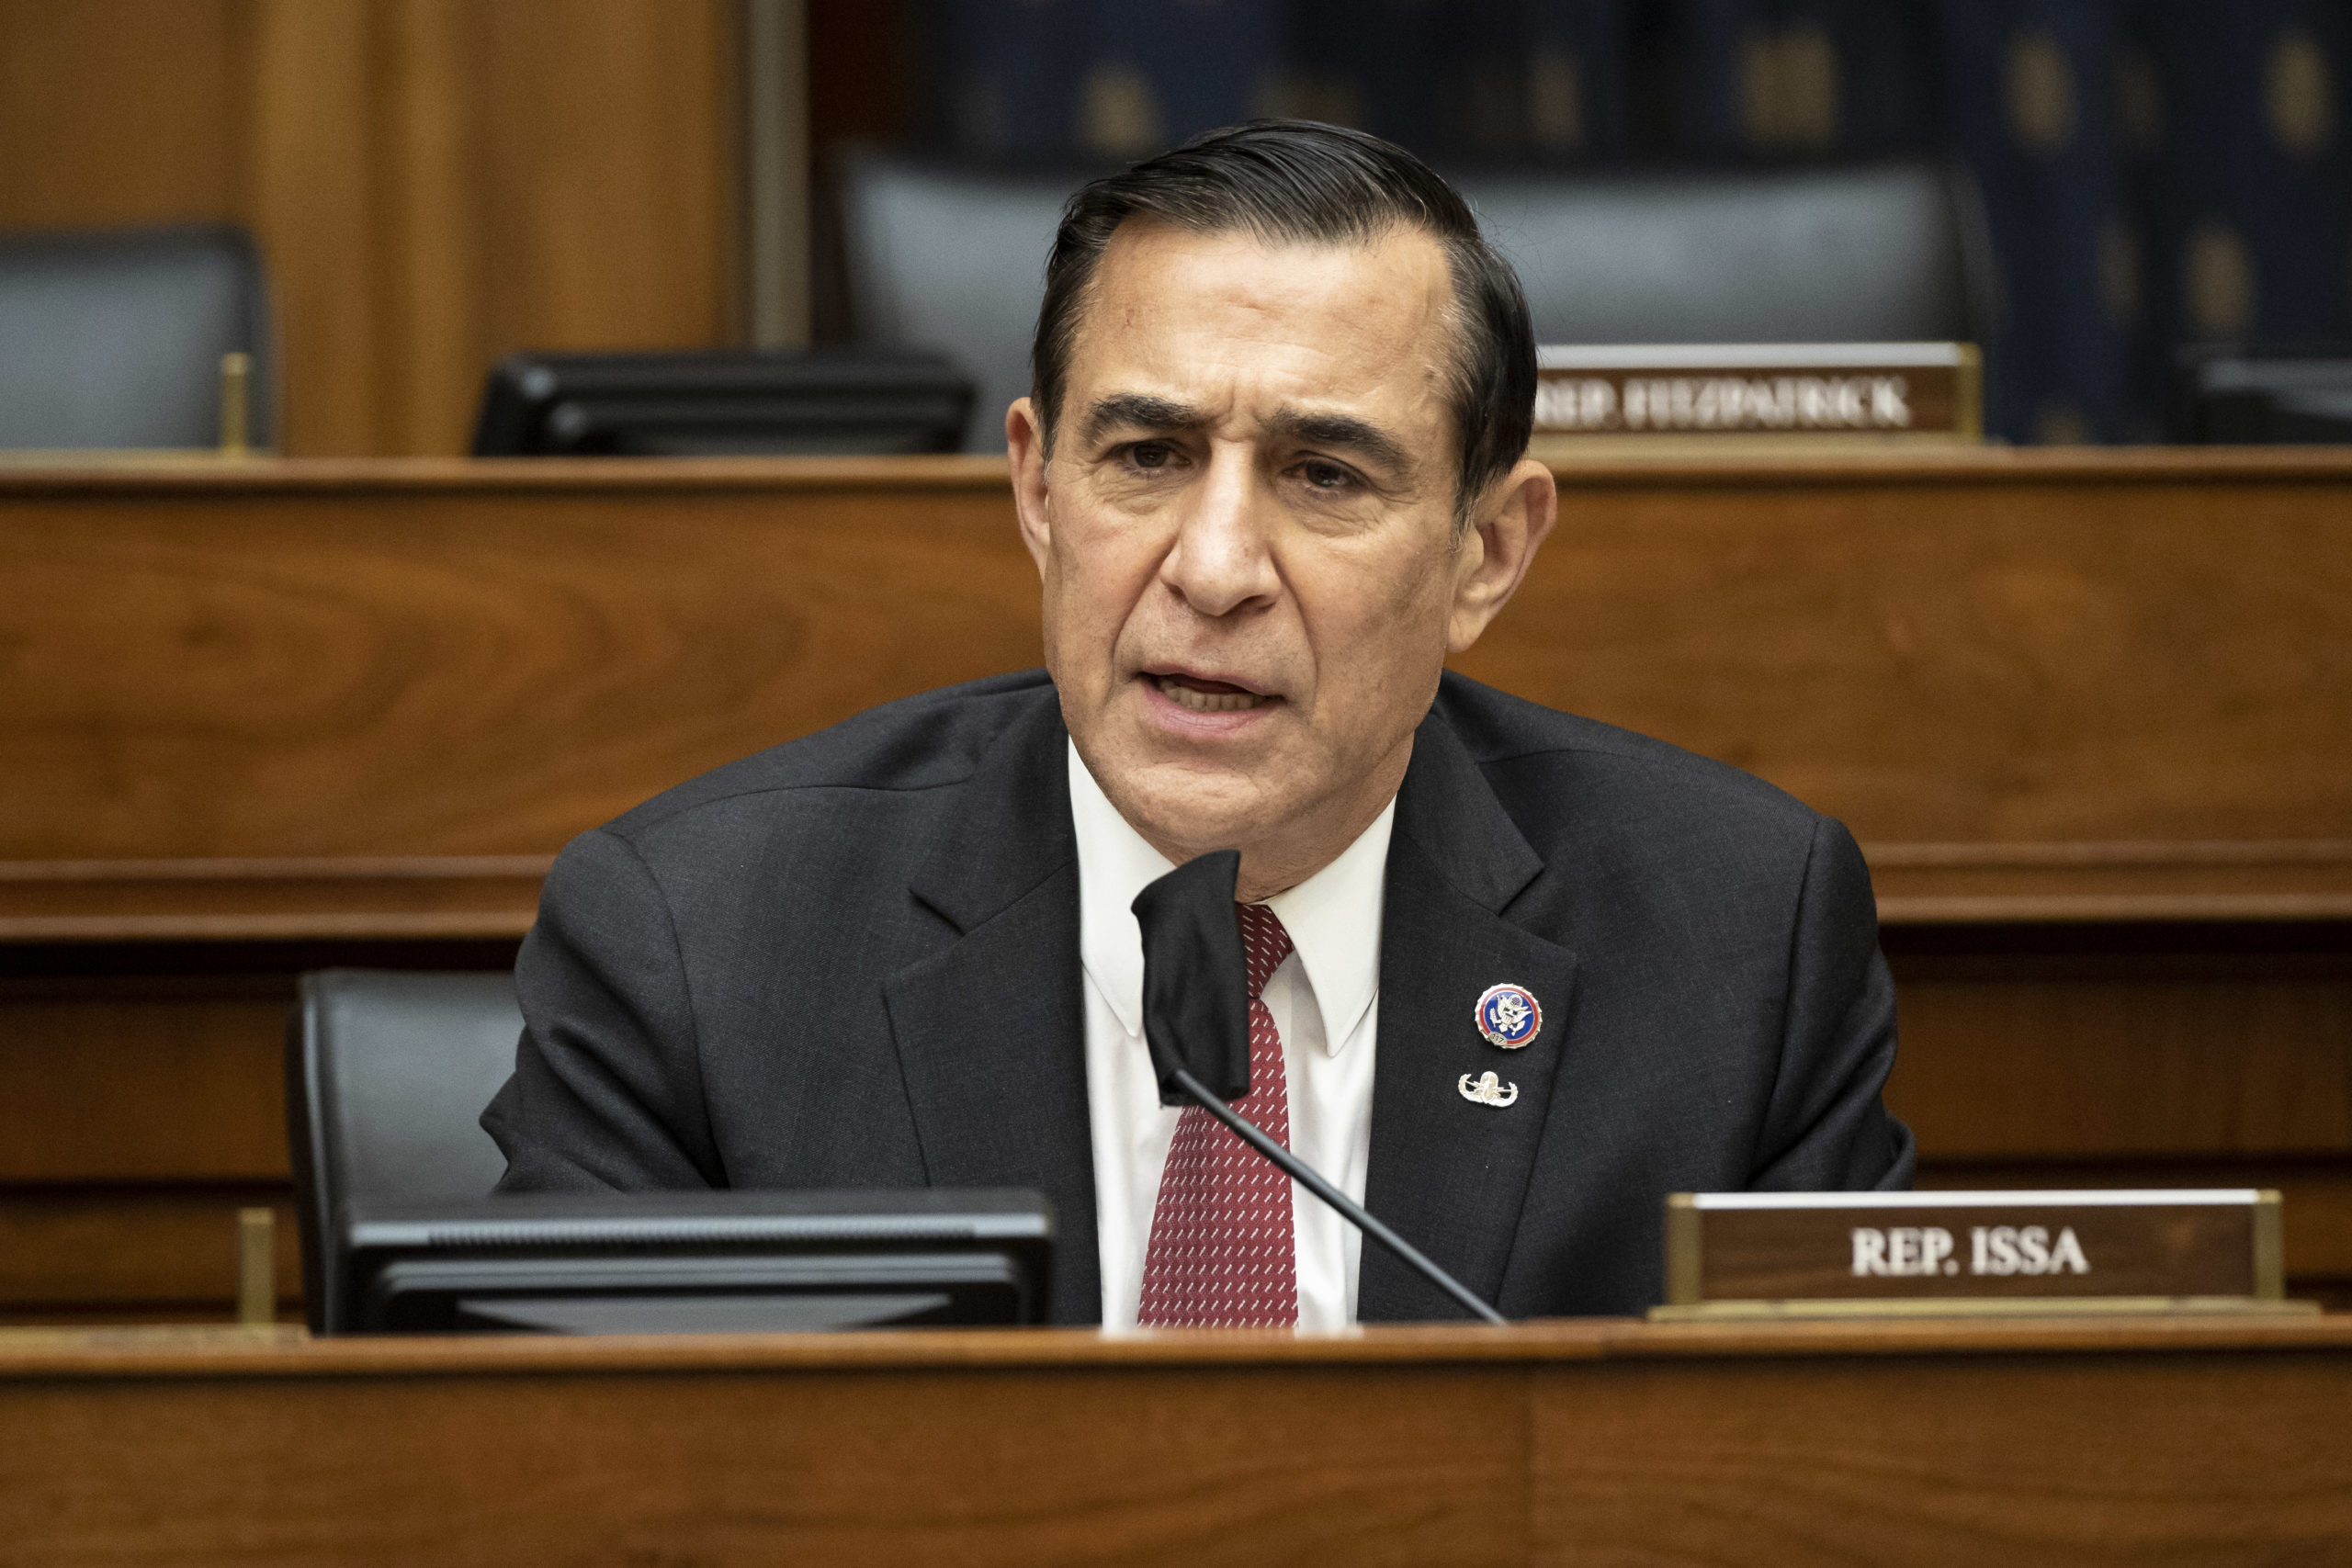 WASHINGTON, DC - MARCH 10: Rep. Darrell Issa (R-CA) speaks as U.S. Secretary of State Antony Blinken testifies before the House Committee On Foreign Affairs March 10, 2021 on Capitol Hill in Washington, DC. Blinken is expected to take questions about the Biden administration's priorities for U.S. foreign policy. (Photo by Ting Shen-Pool/Getty Images)